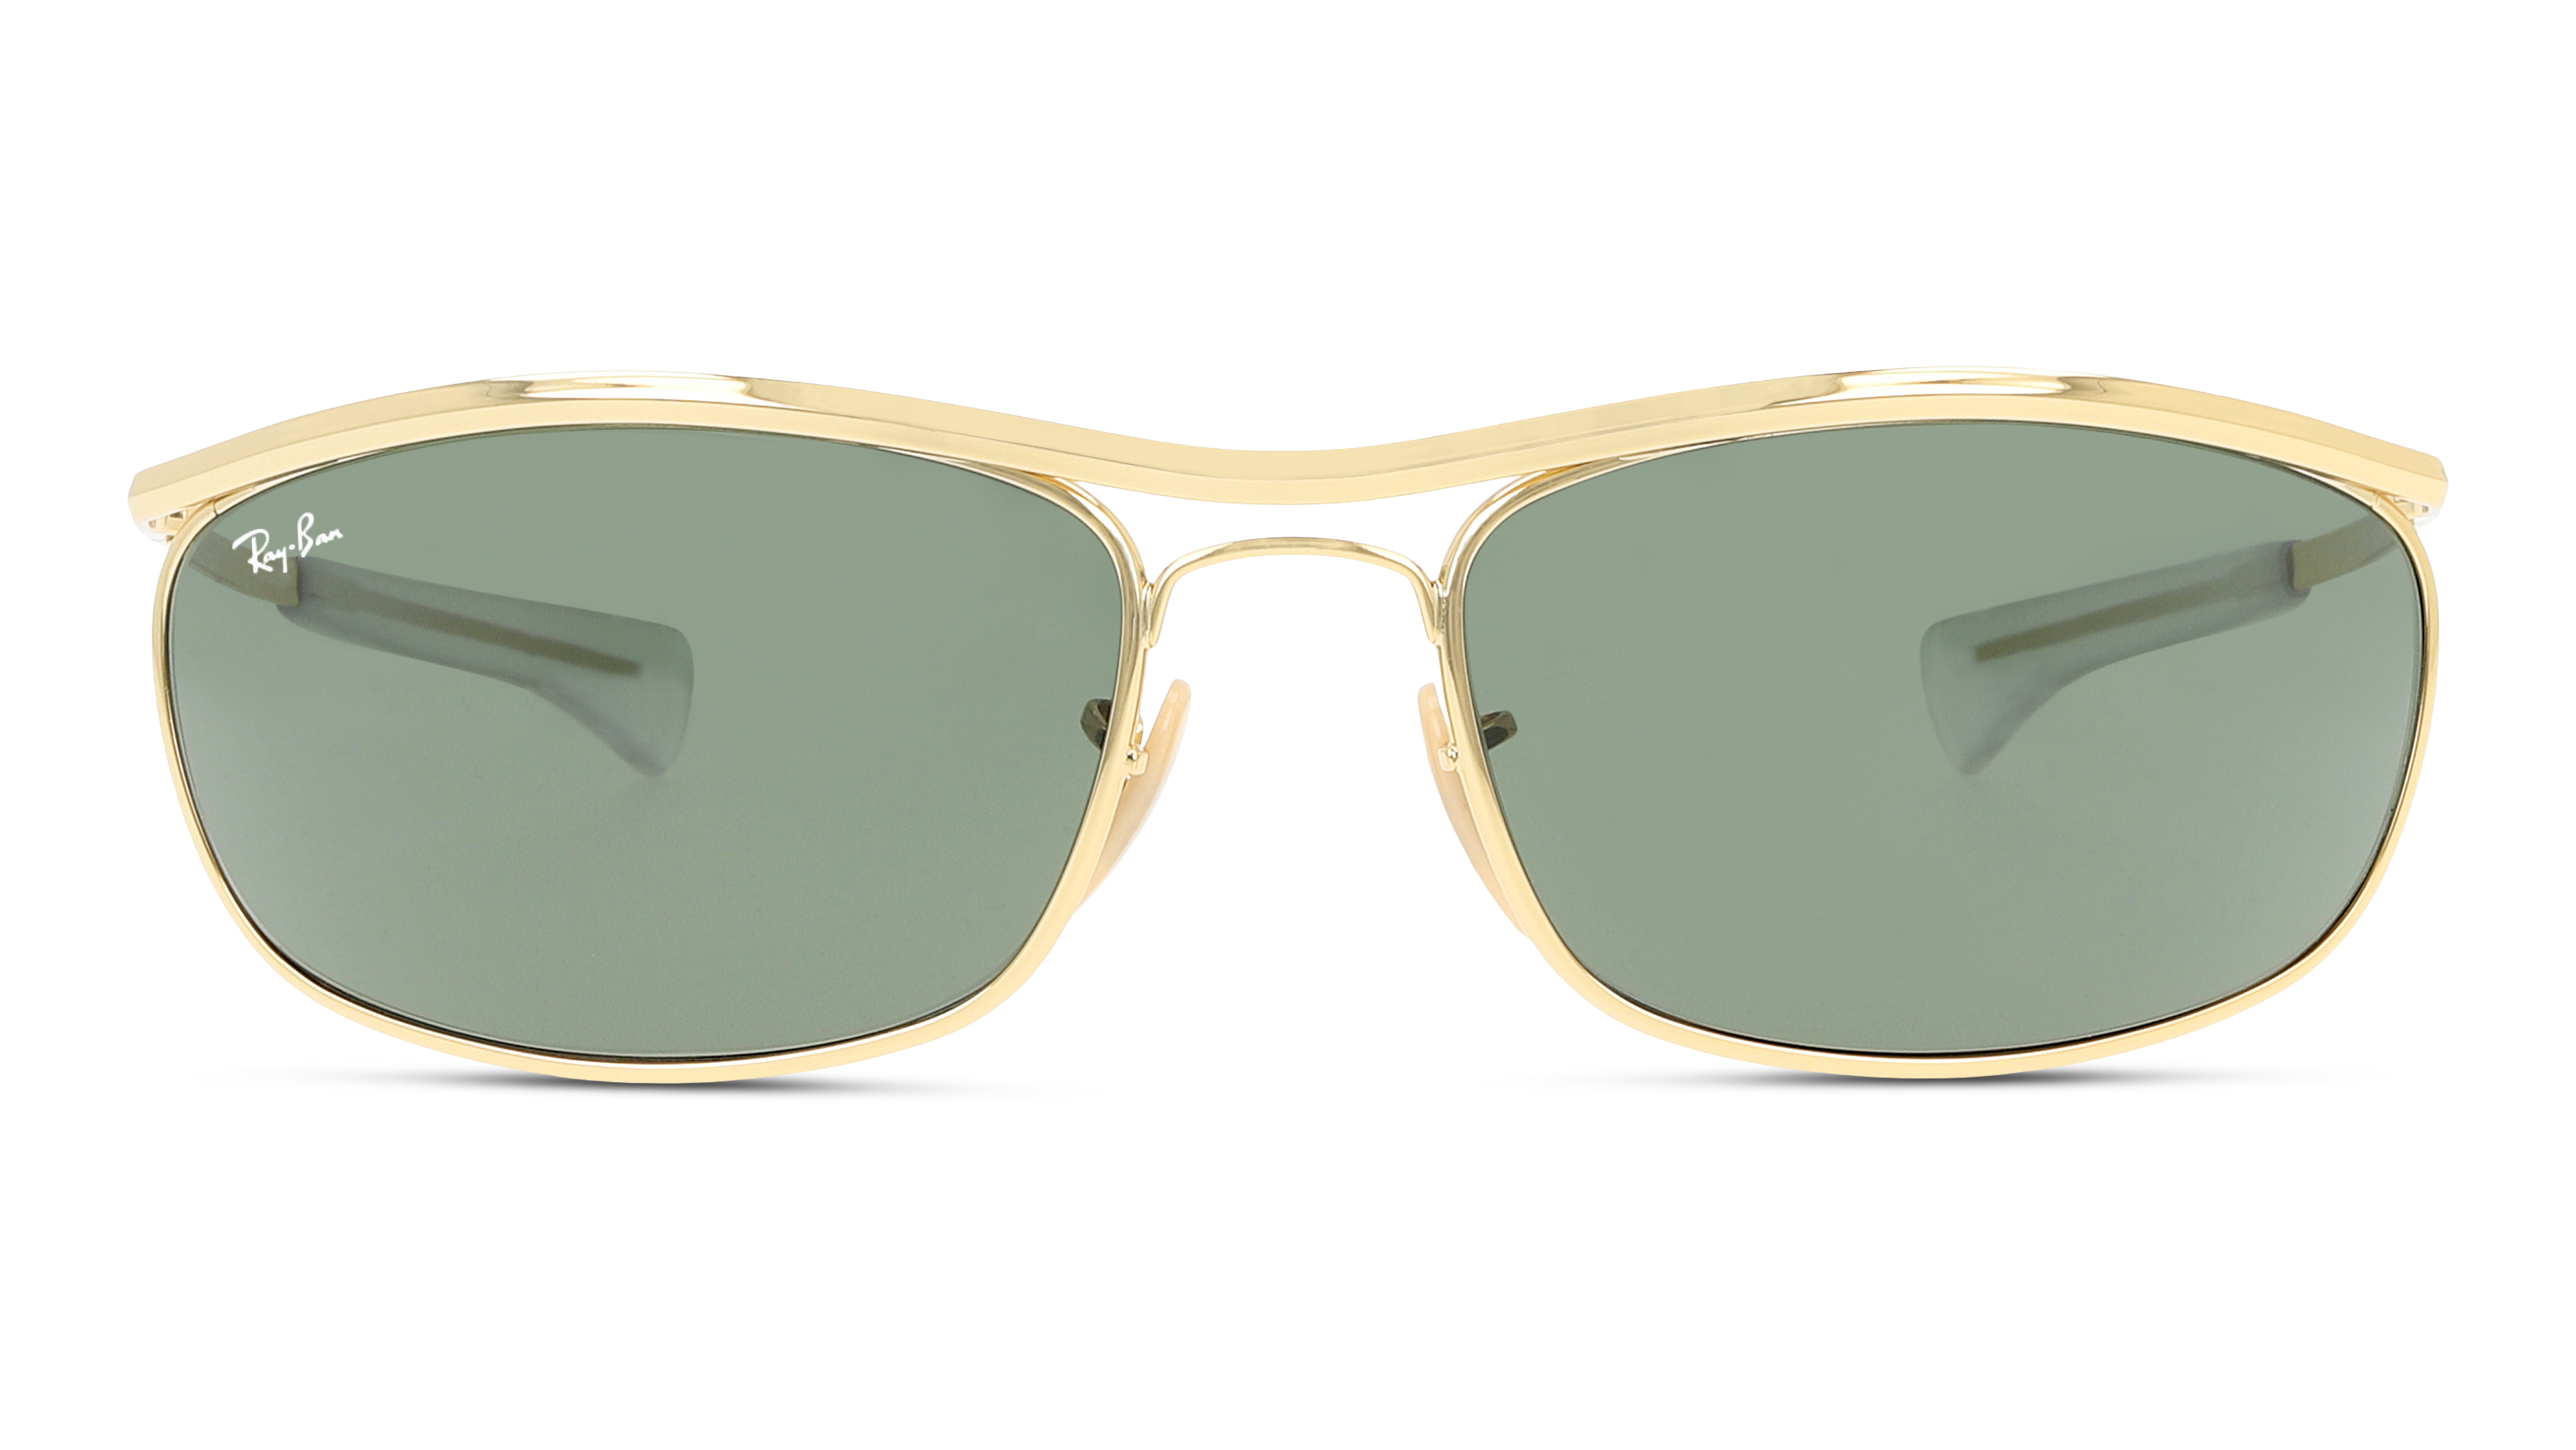 Front Ray-Ban Ray-Ban 3119M 001/31 62/18 Goud/Groen